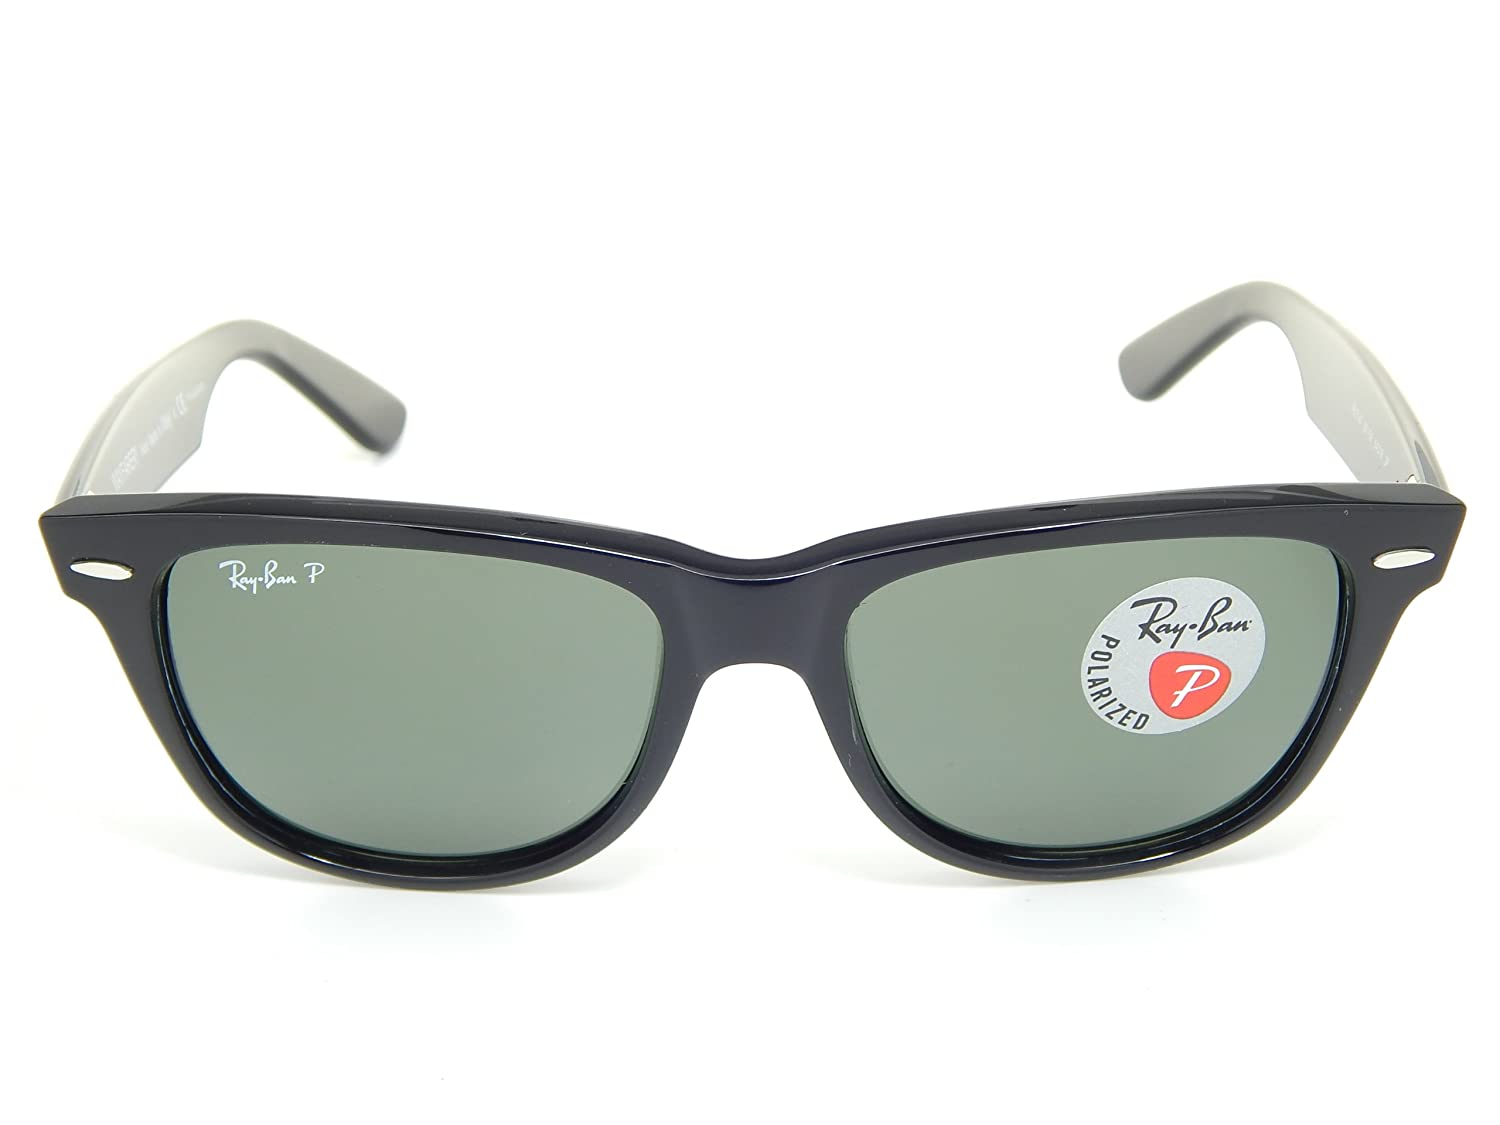 e0958af957 Amazon.com  Ray Ban Wayfarer Polarized RB2140 901 58 Black G-15 XLT  Polarized 54mm Sunglasses  Shoes